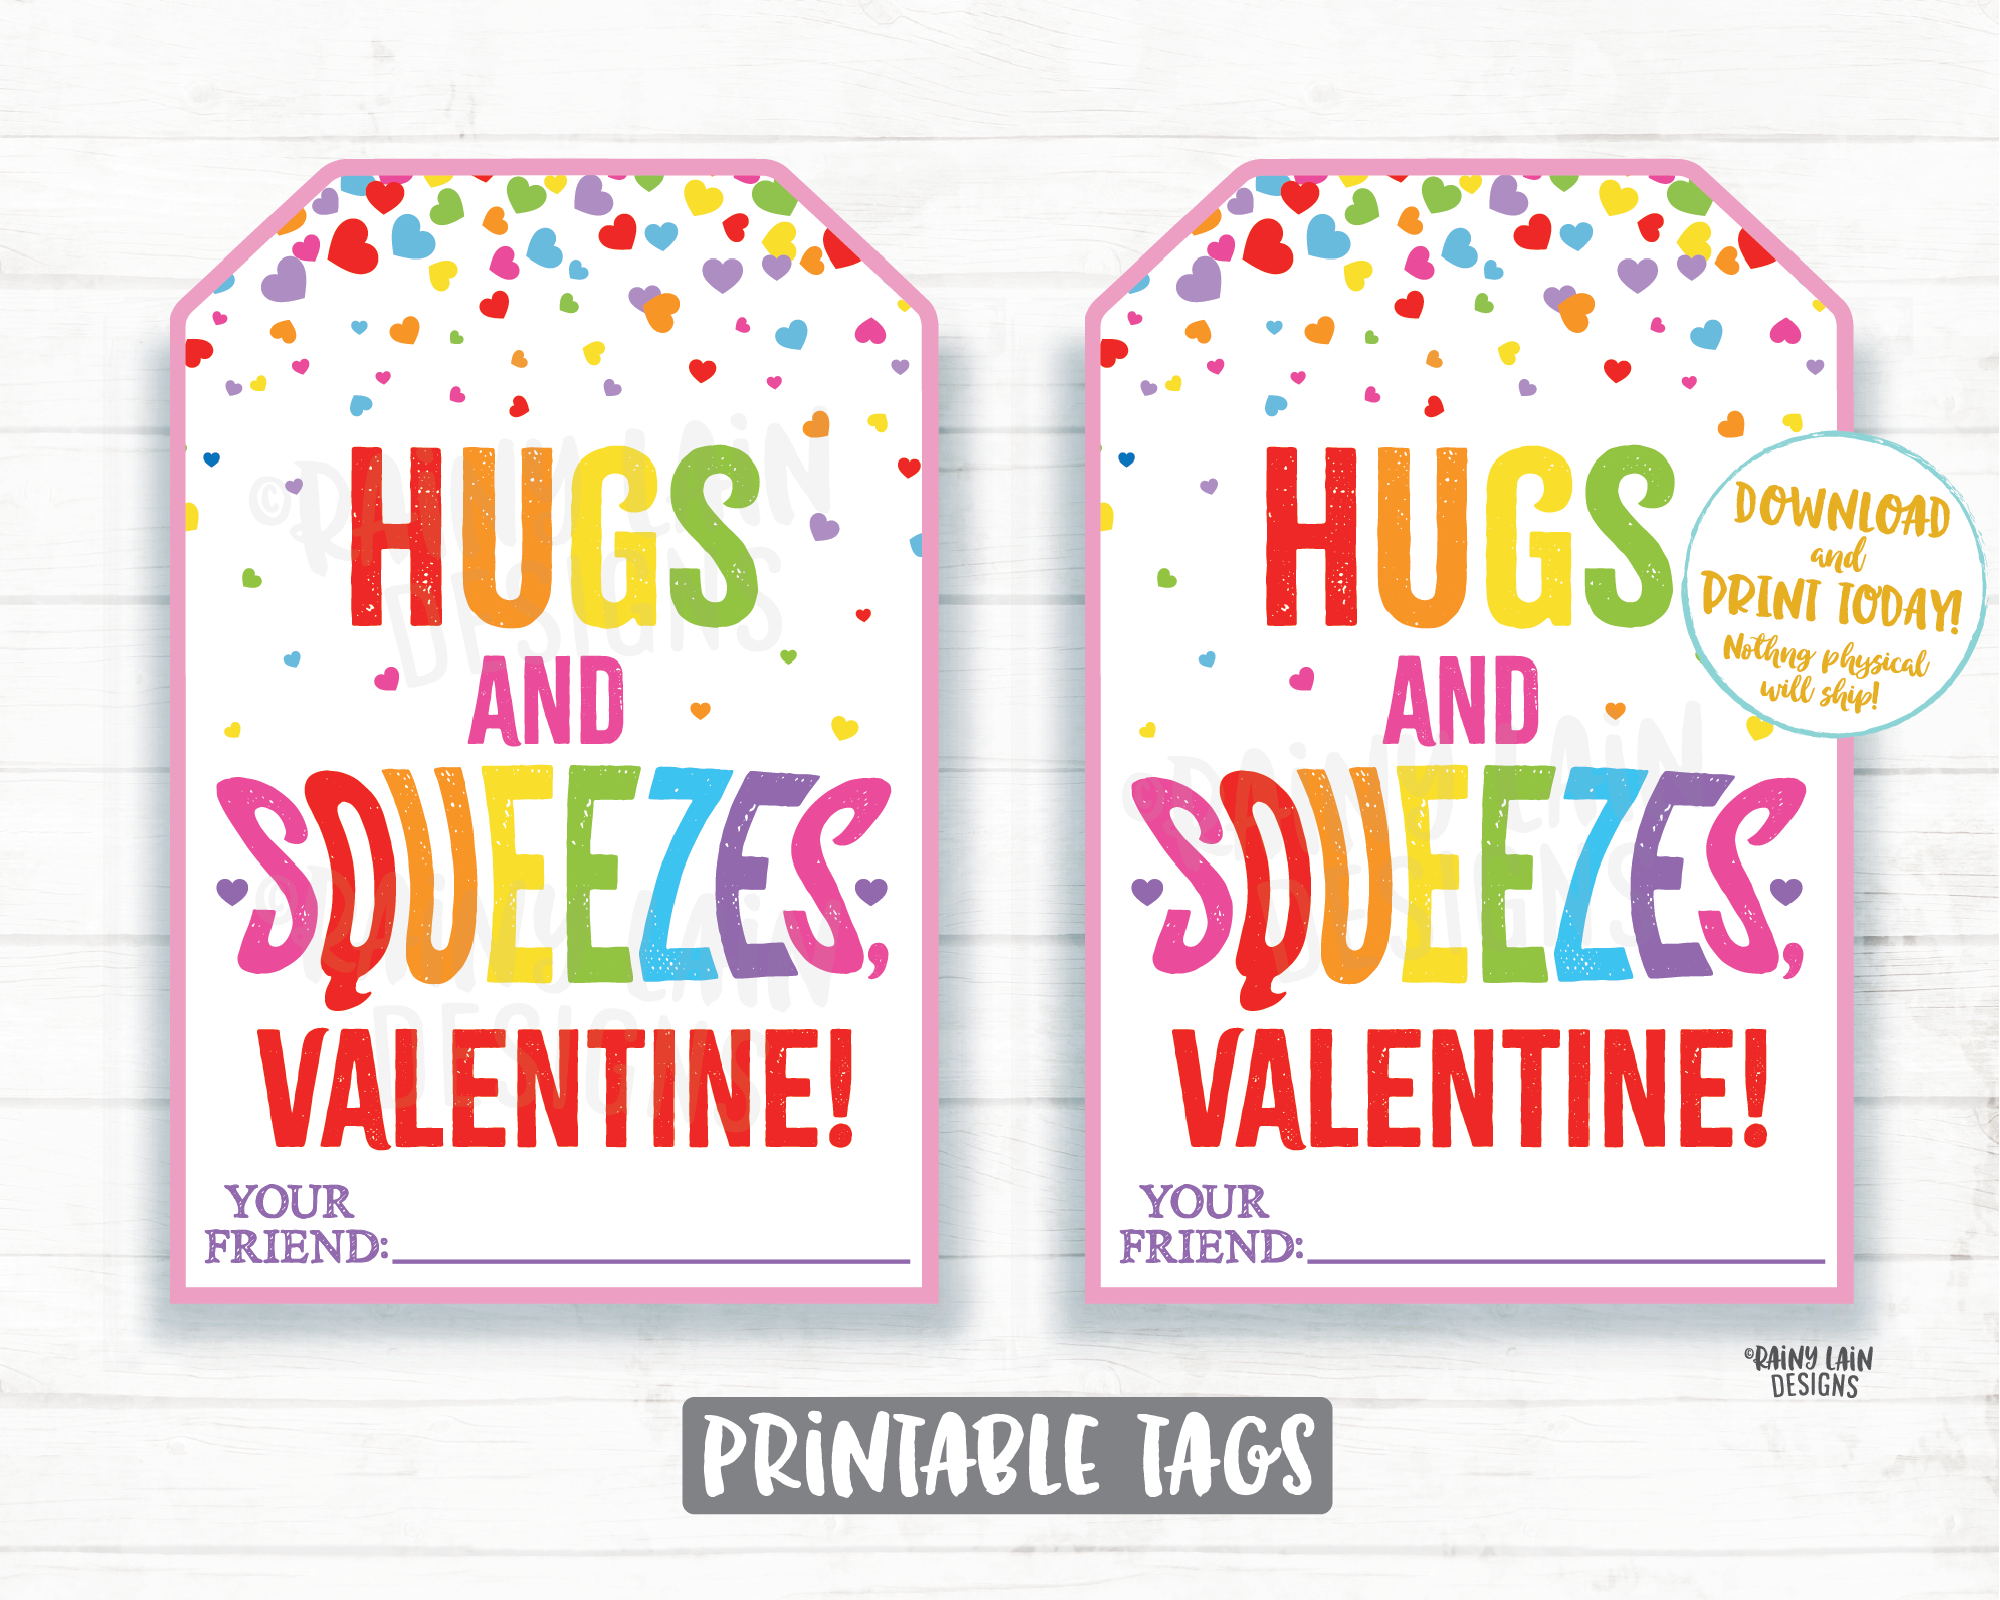 Squeeze Valentine Hugs and Squeezes Squishie Applesauce Squishy Toy Squishee Squeeze Preschool Classroom Printable Non-Candy Valentine Tag